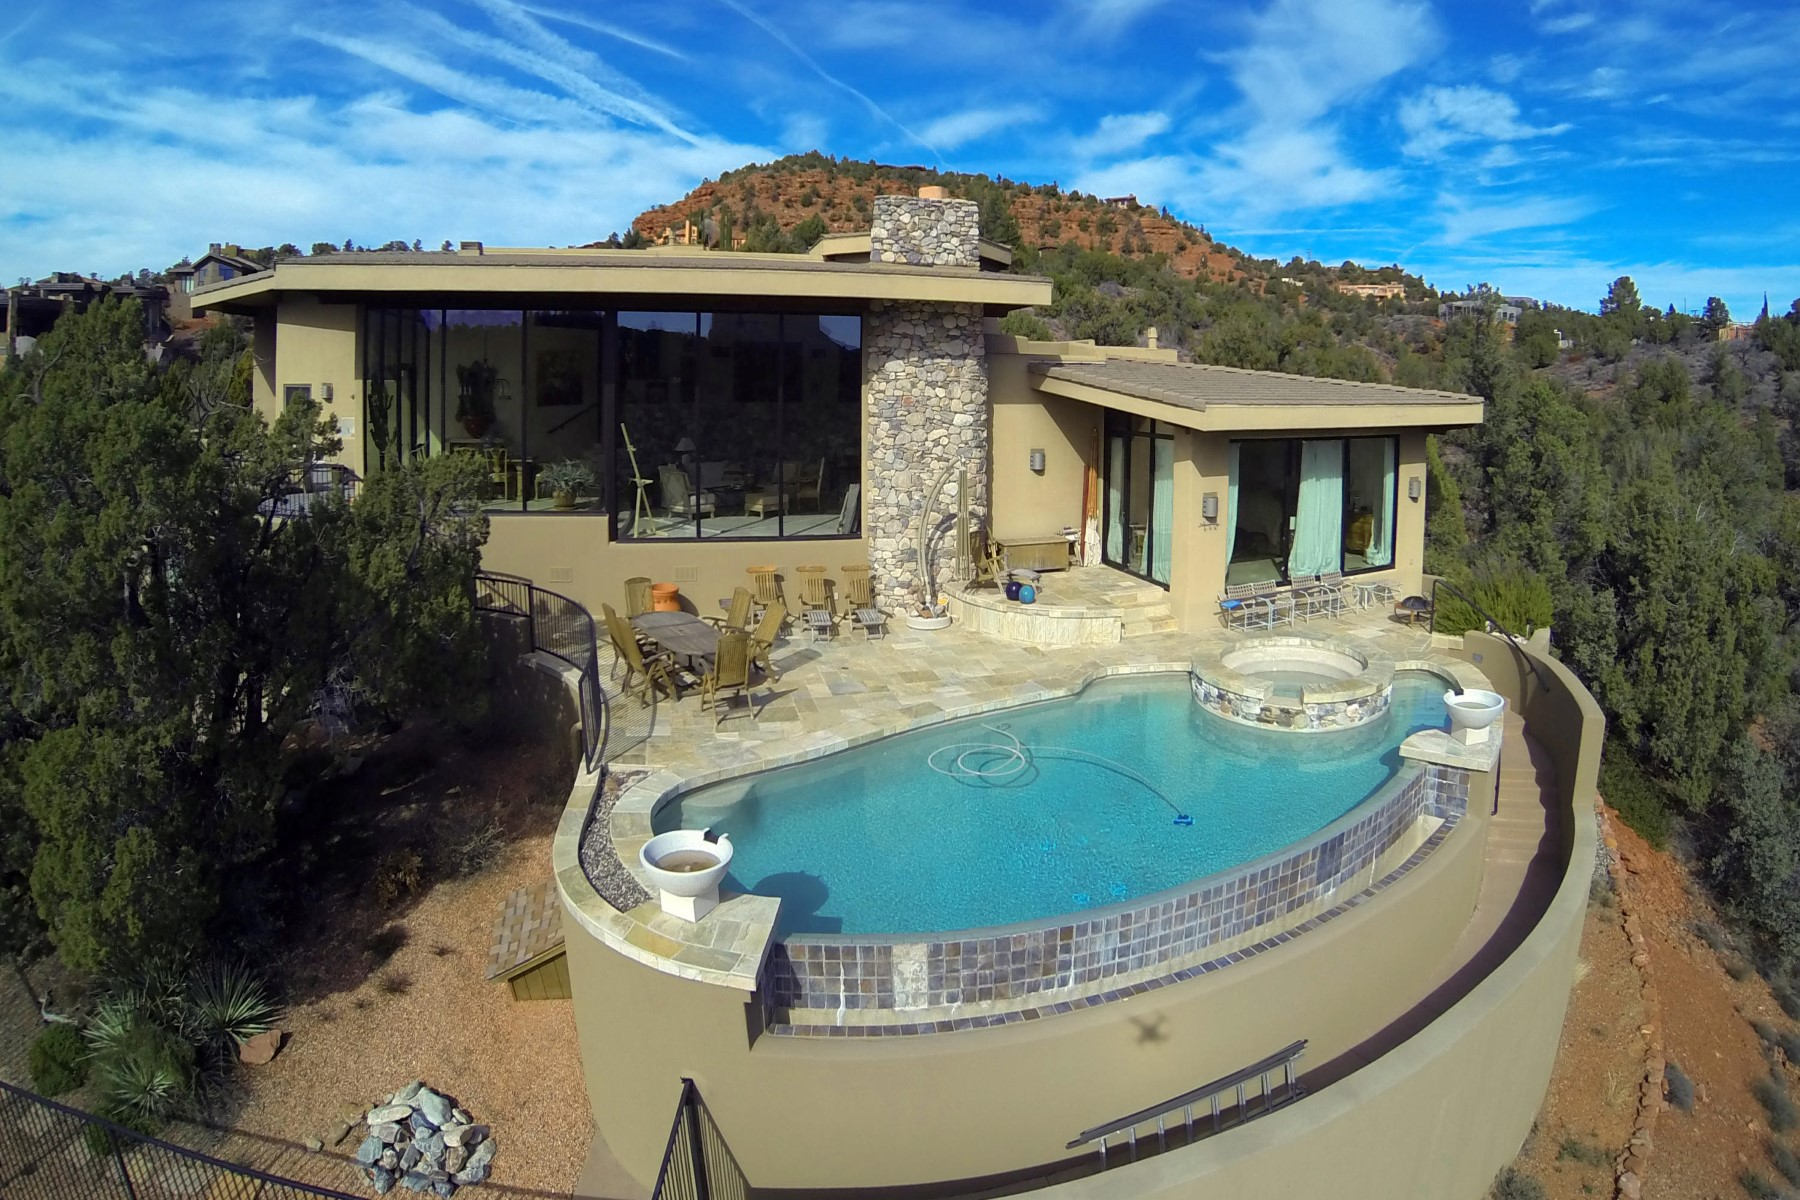 Maison unifamiliale pour l Vente à his stunning contemporary southwest home has elevated panoramic red rock views. 25 Sagebrush WAY Sedona, Arizona 86336 États-Unis